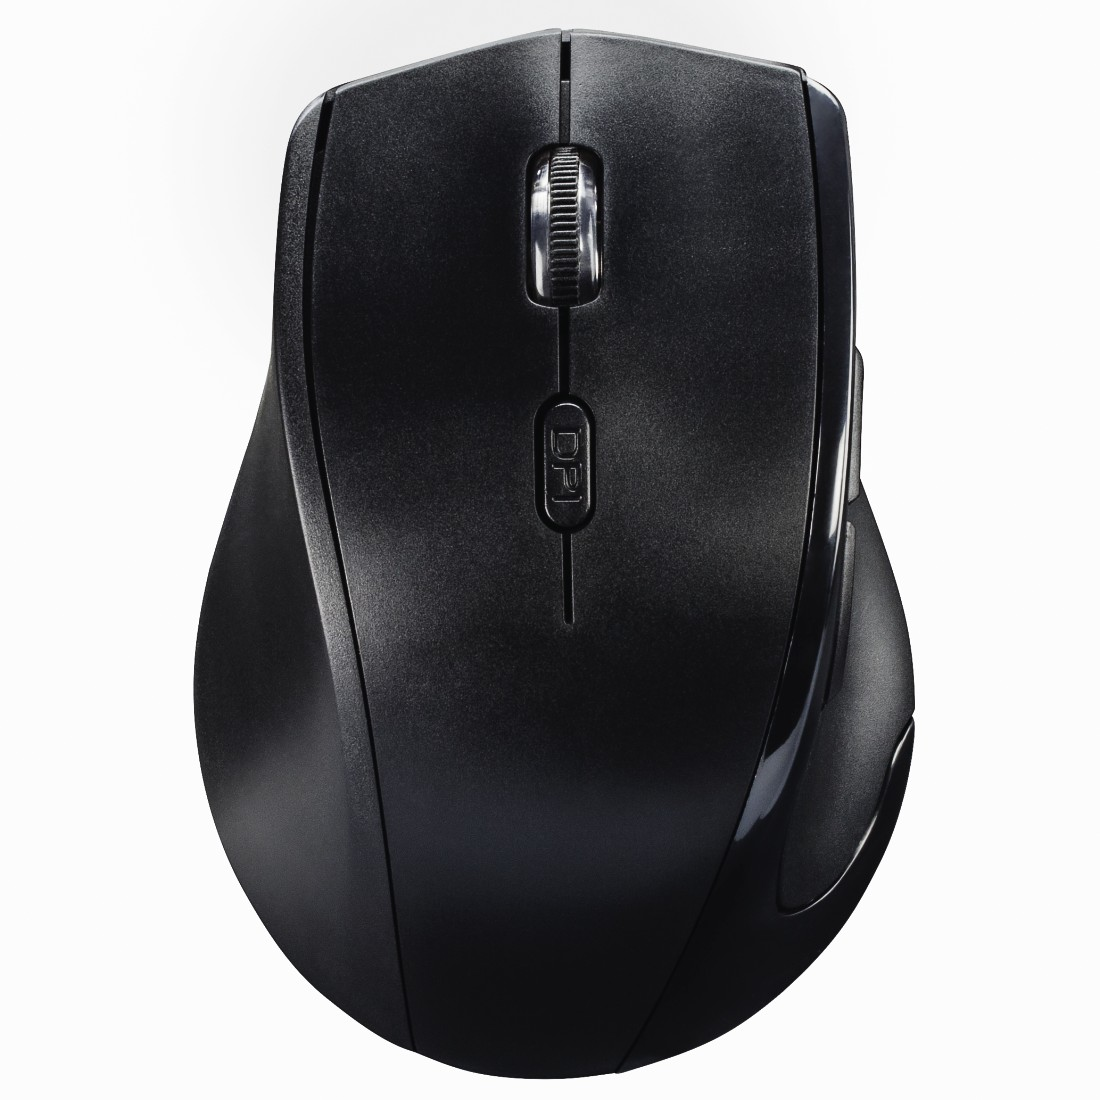 abx3 High-Res Image 3 - Hama, Riano Left-handed Mouse, black